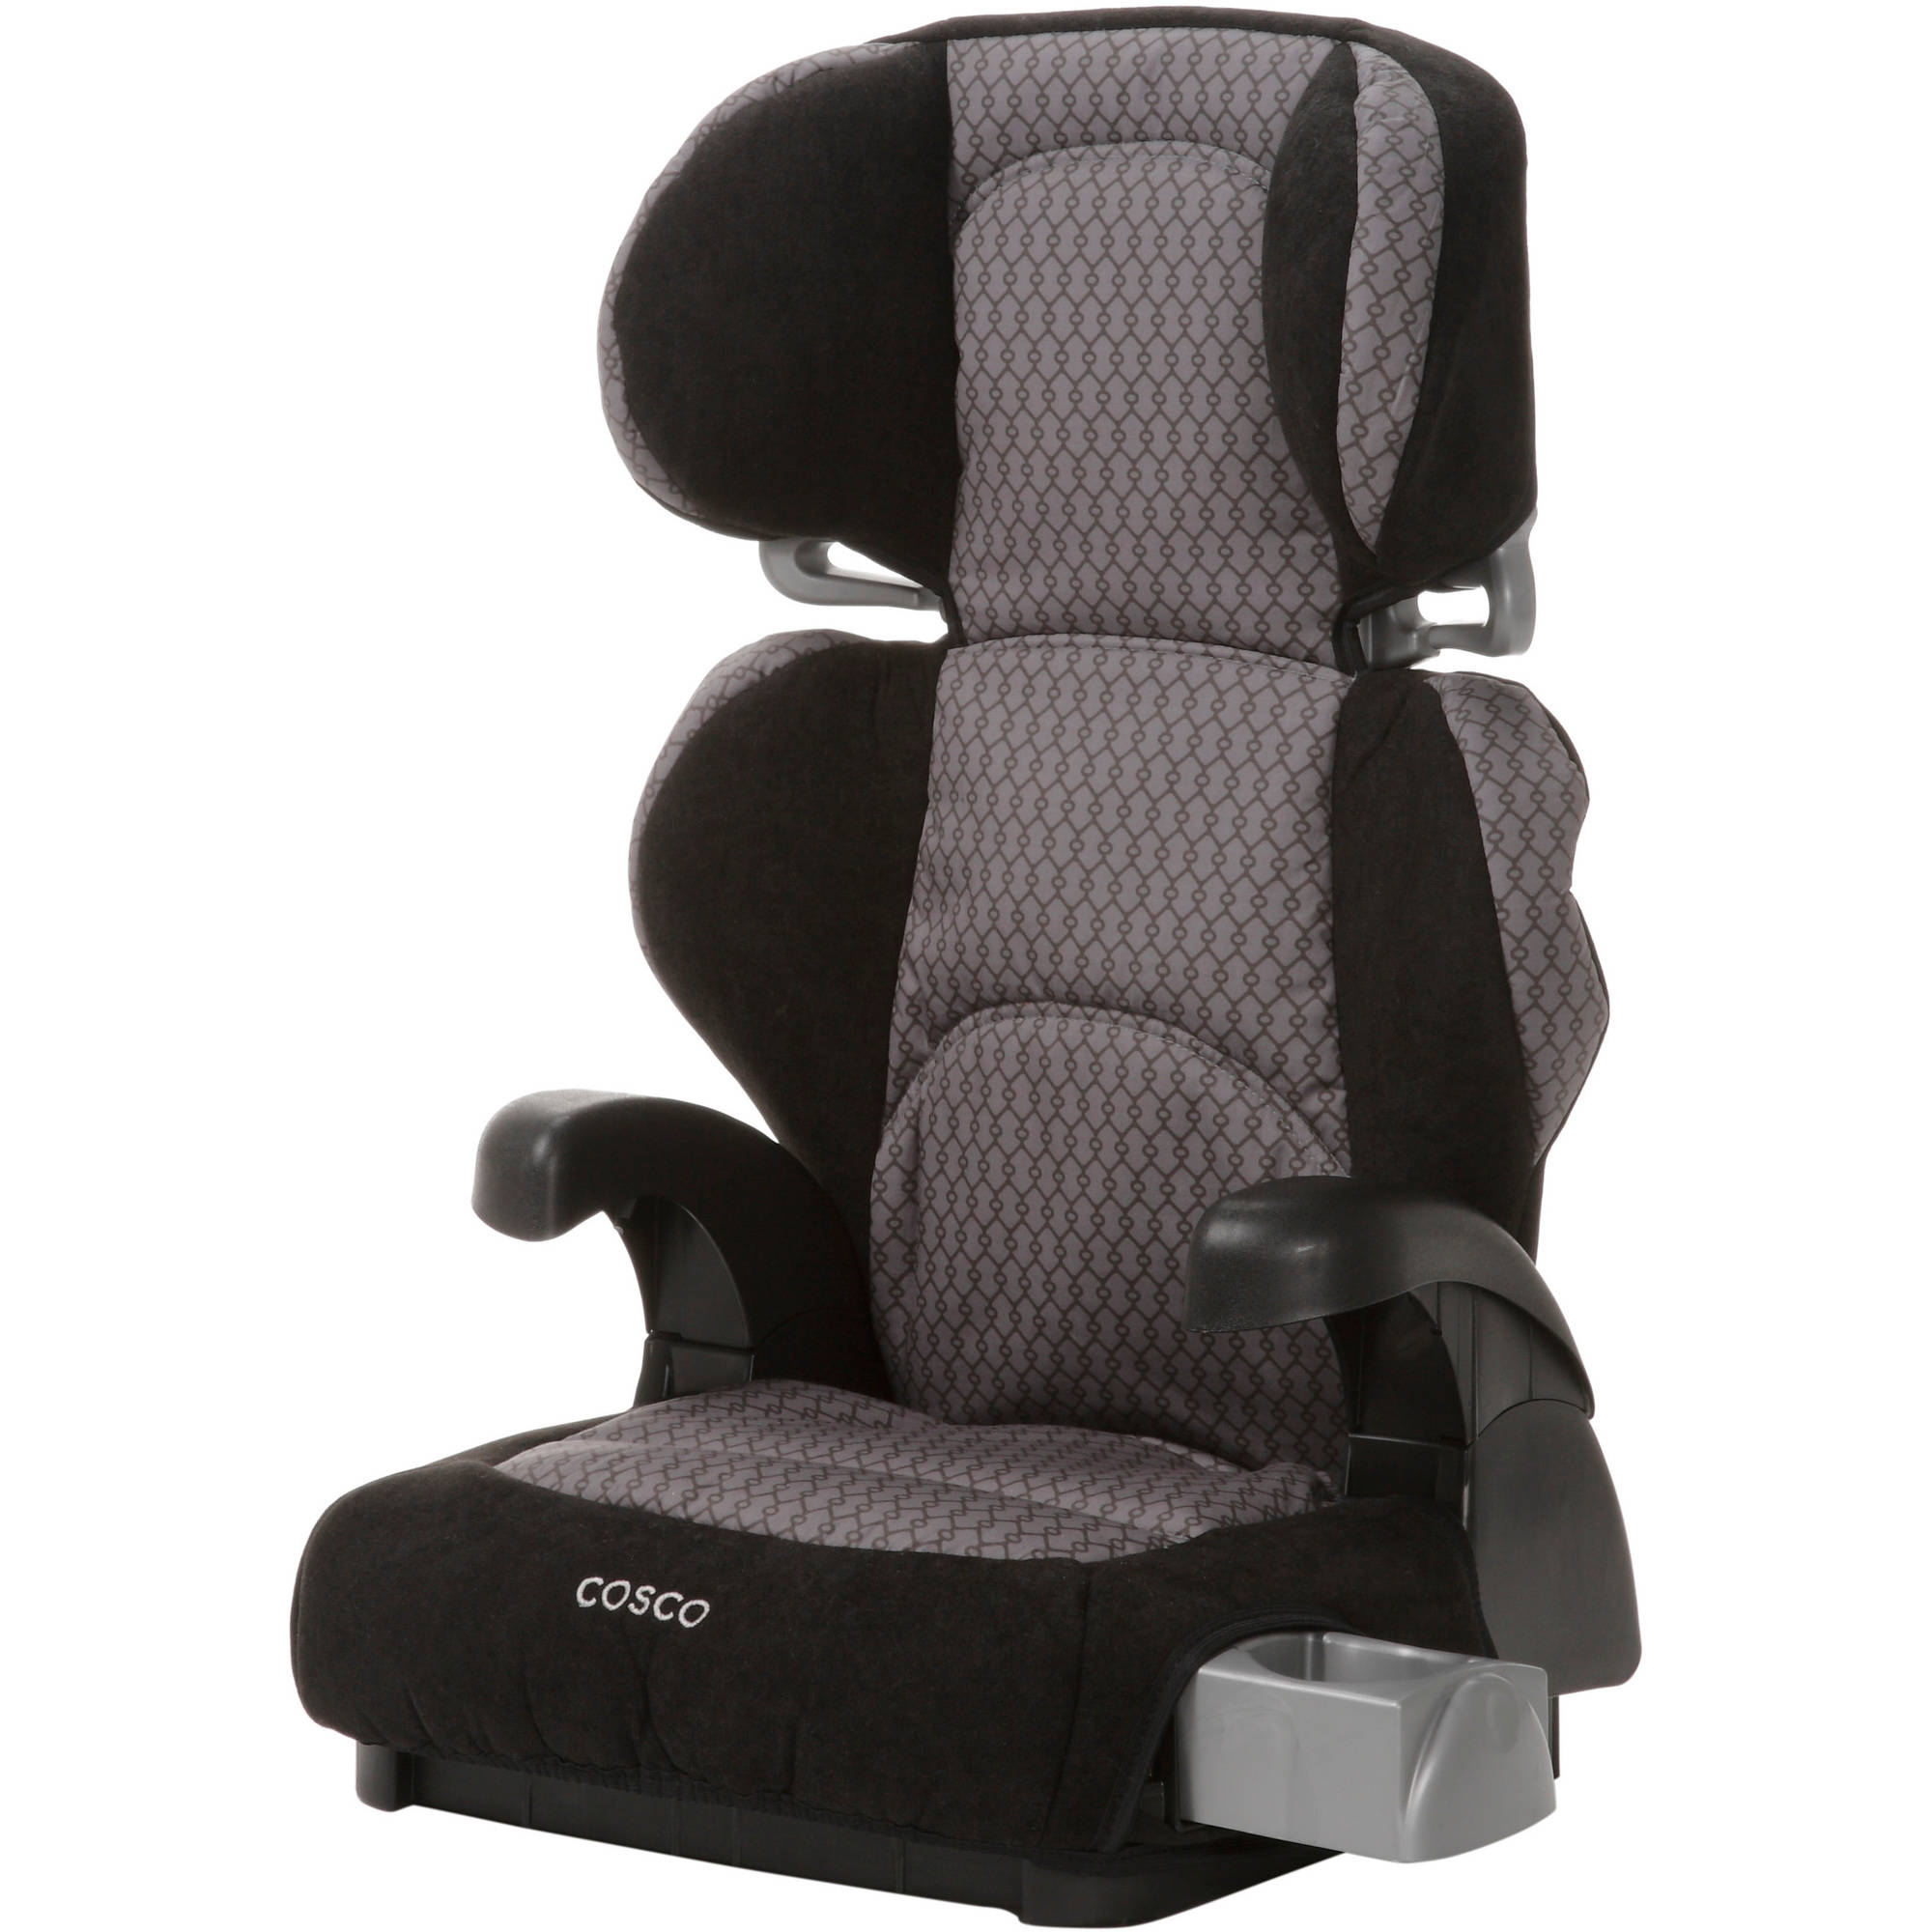 Cosco Pronto Belt-Positioning Booster Car Seat, Linked Black